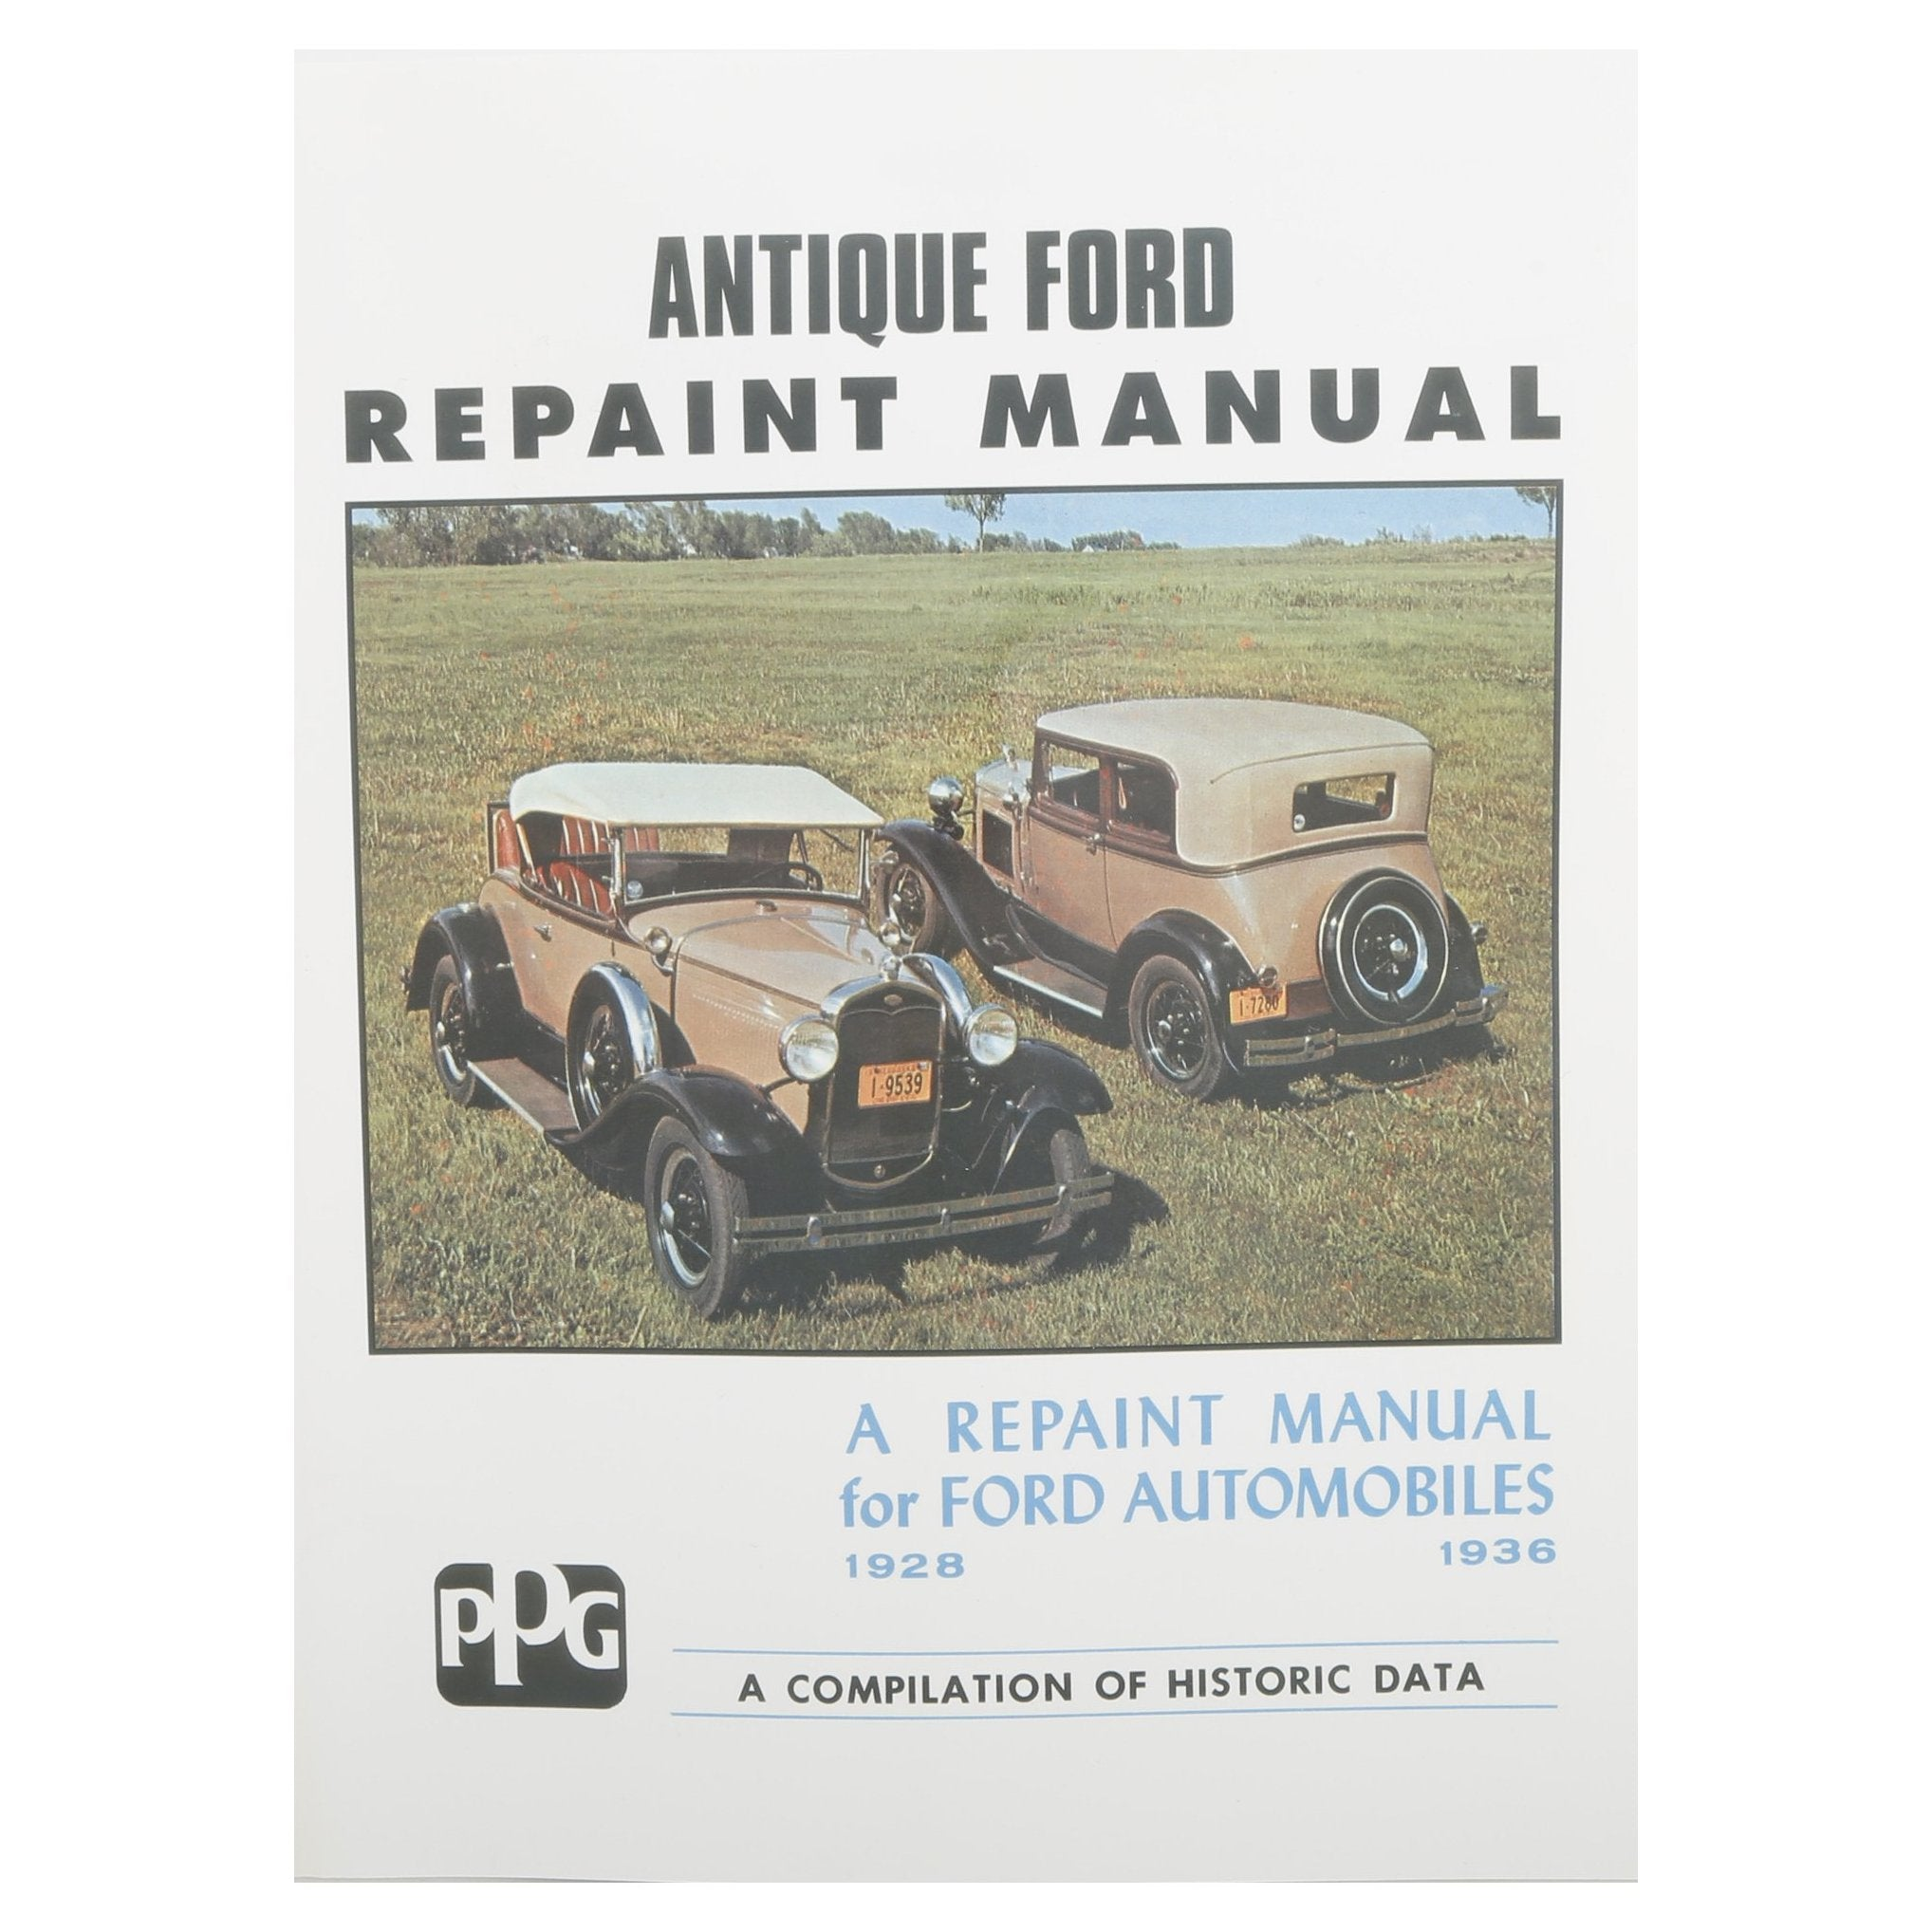 Repaint Manual • Ford